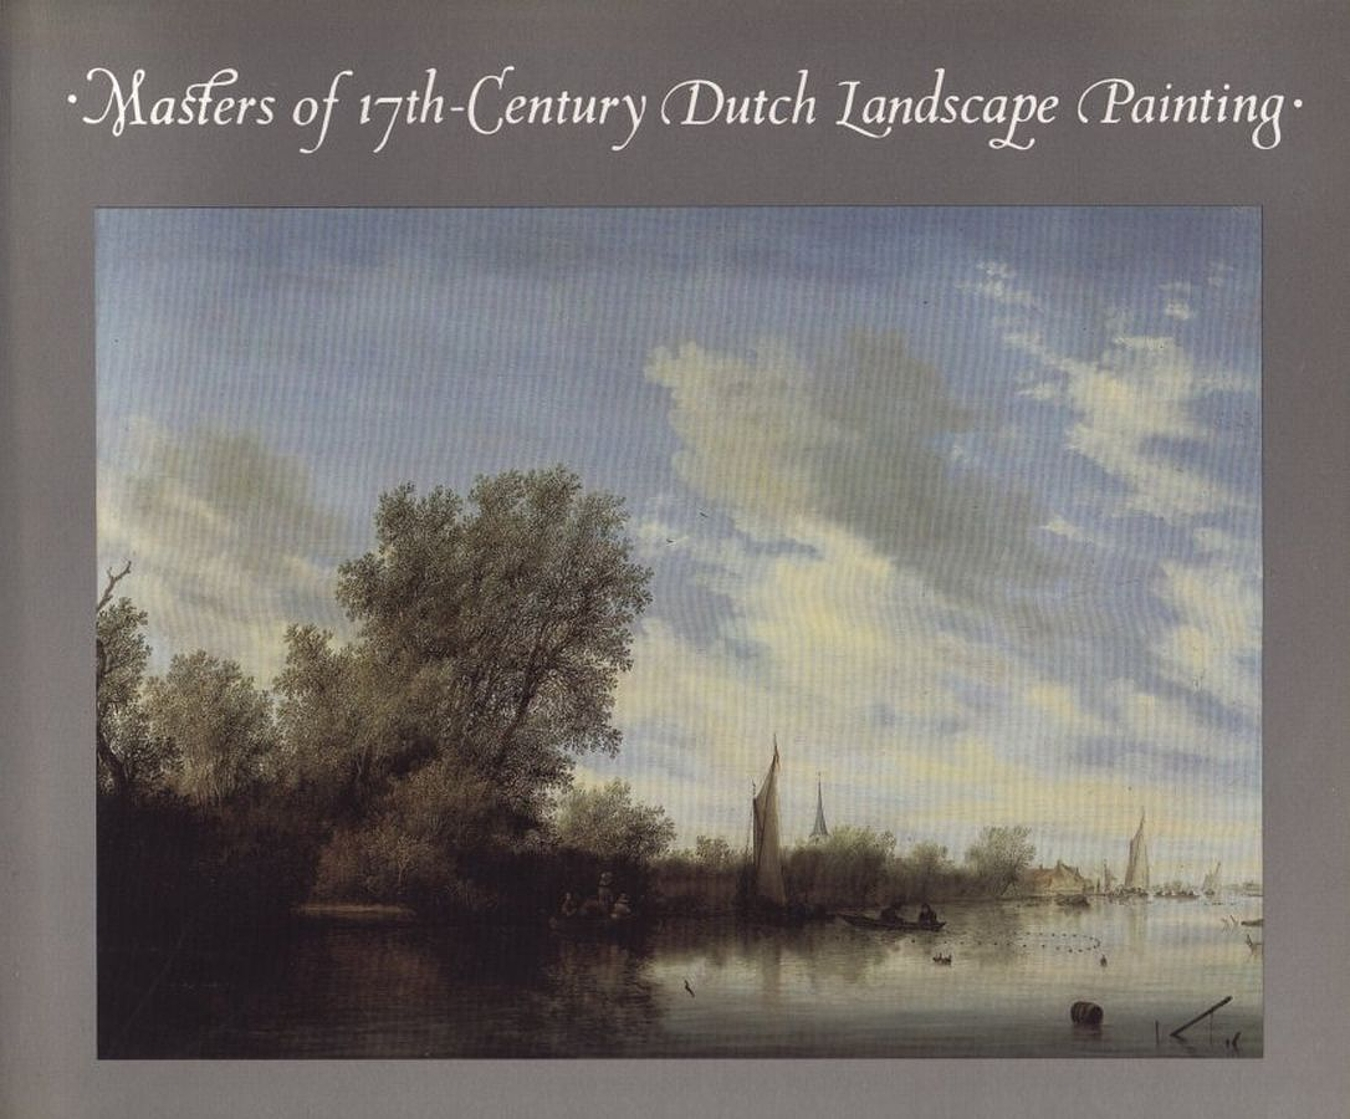 17th century masters of dutch painting essay